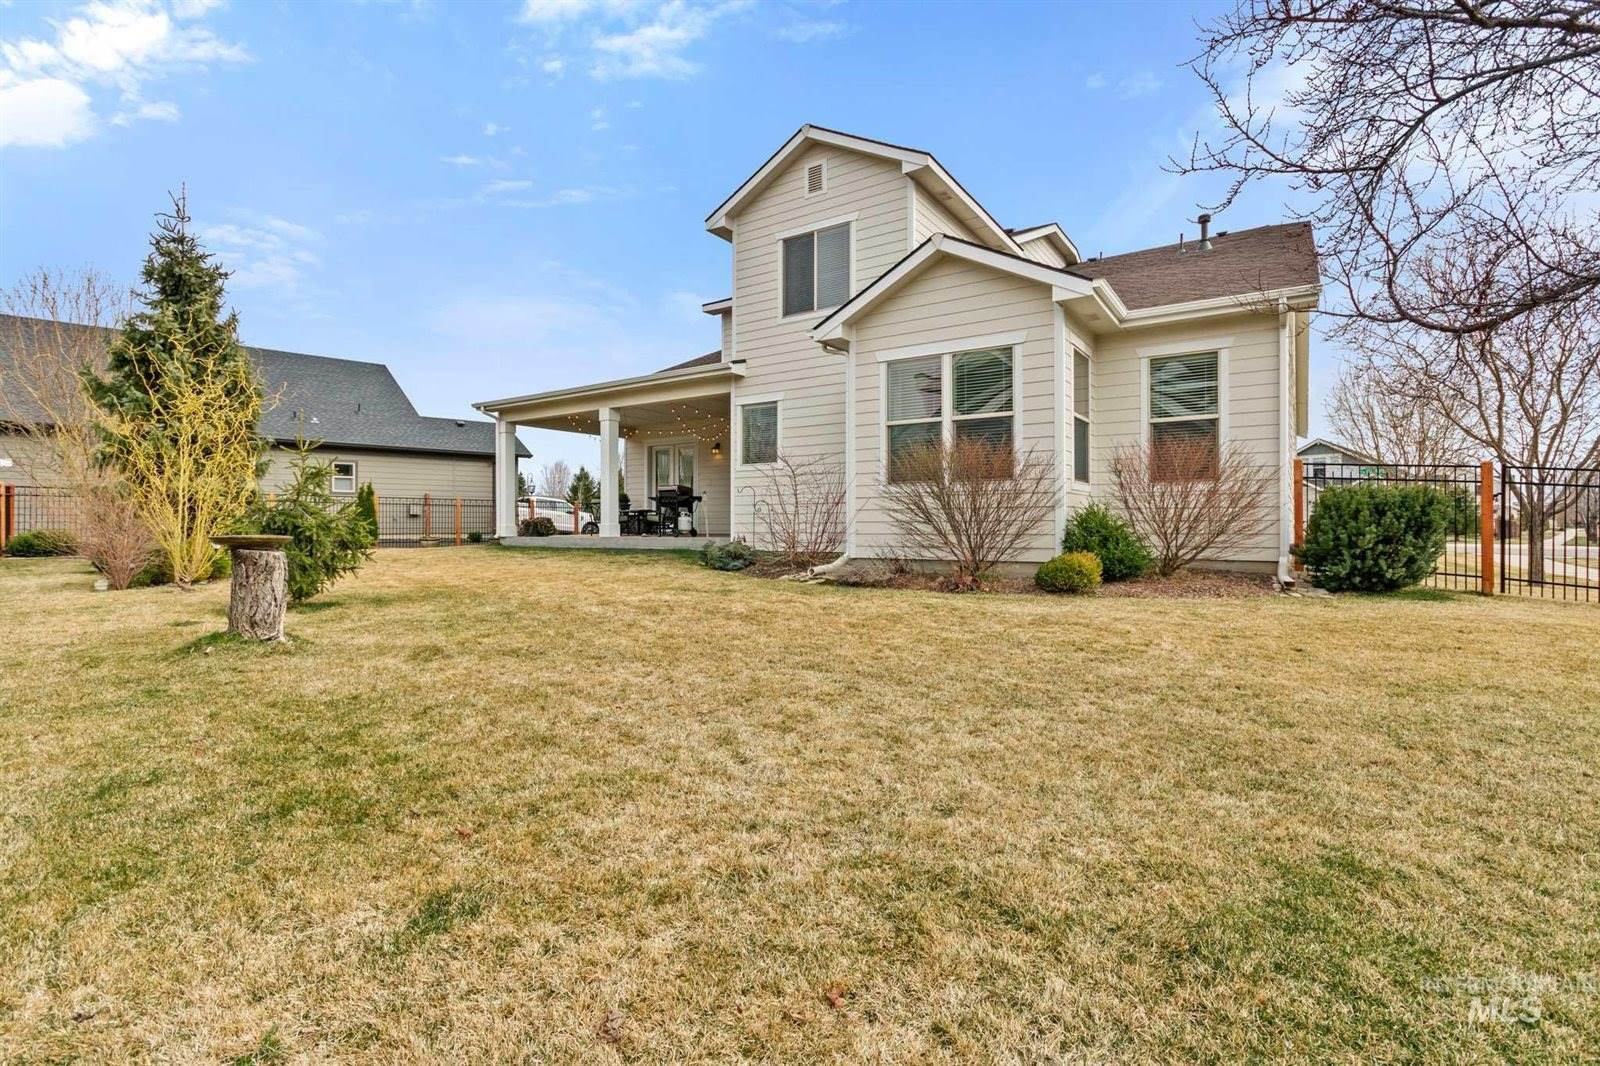 4840 West Clear Field Ct, Eagle, ID 83616